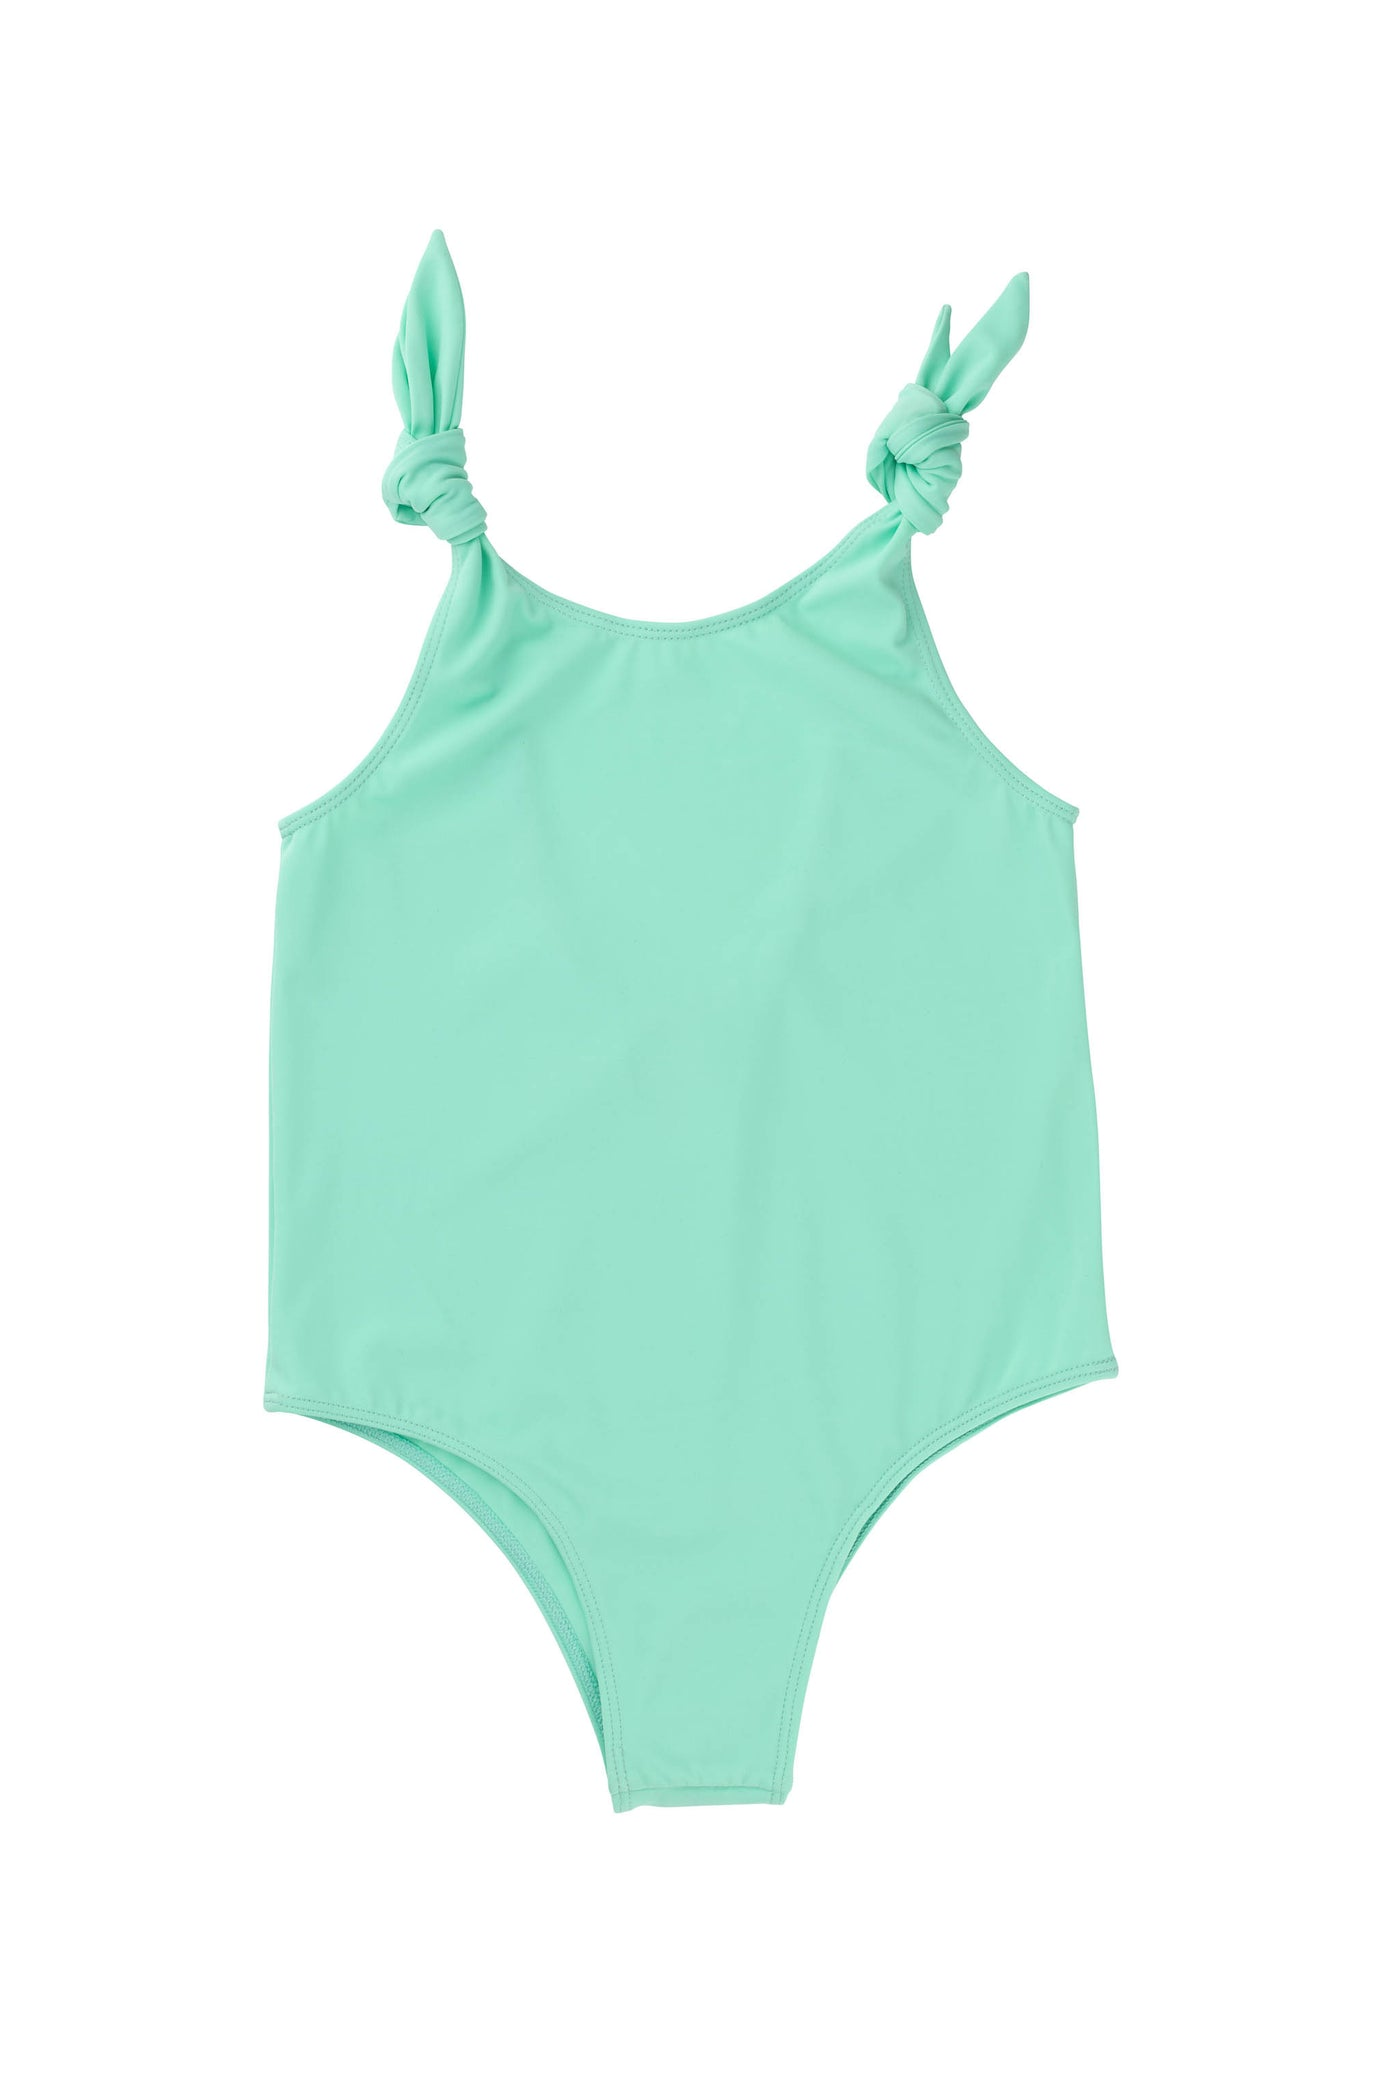 Mabel one piece - mint